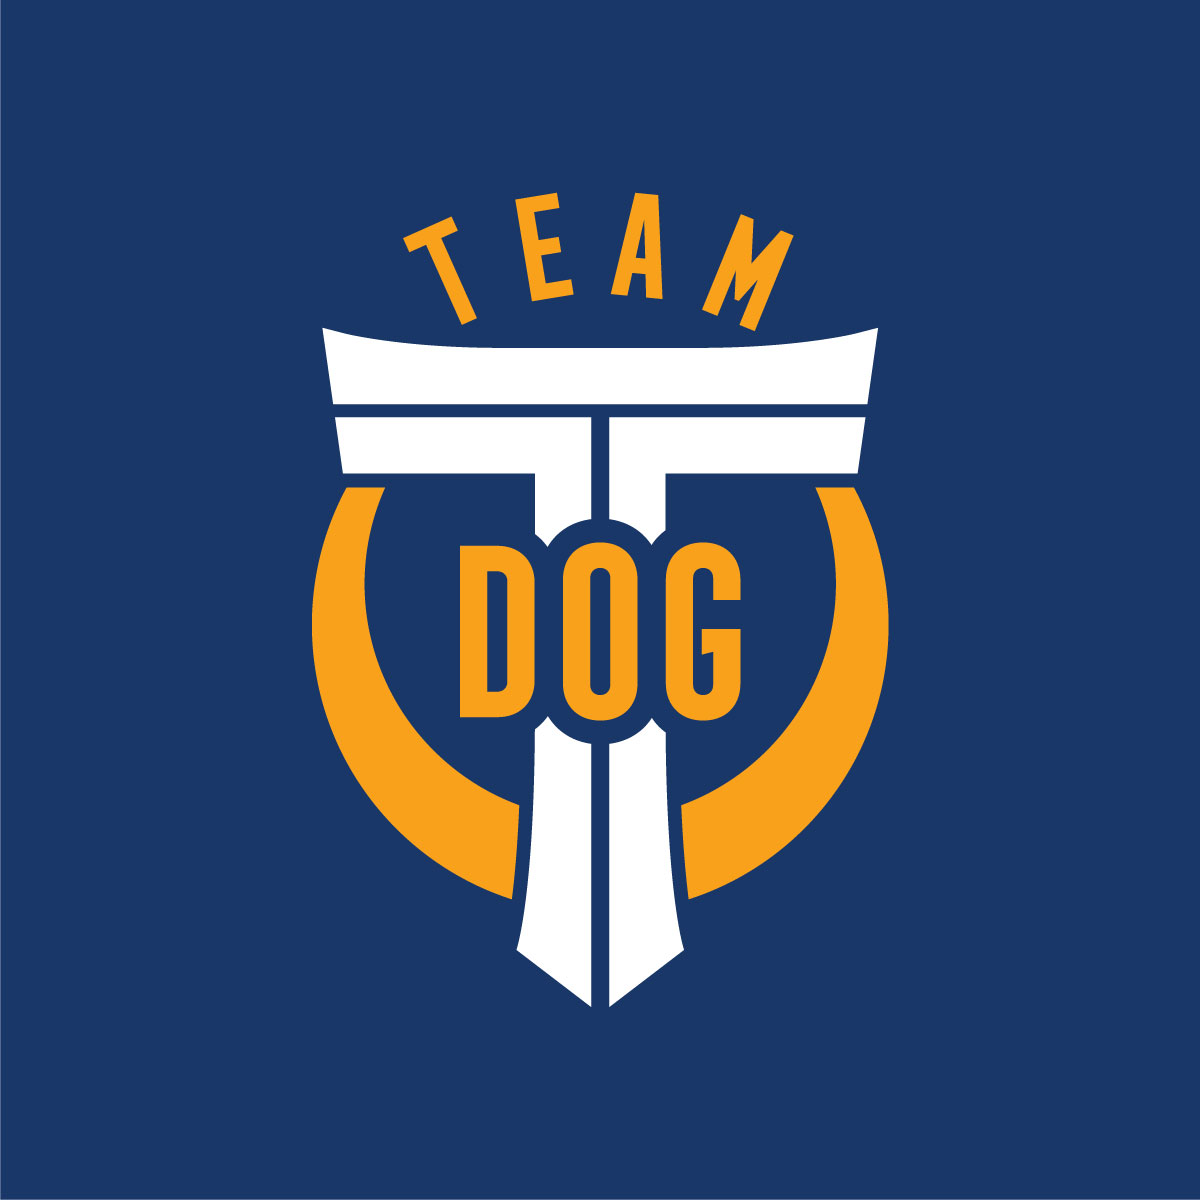 Team T-Dog, Tsuneari Yahiro, Logo Yellow-White